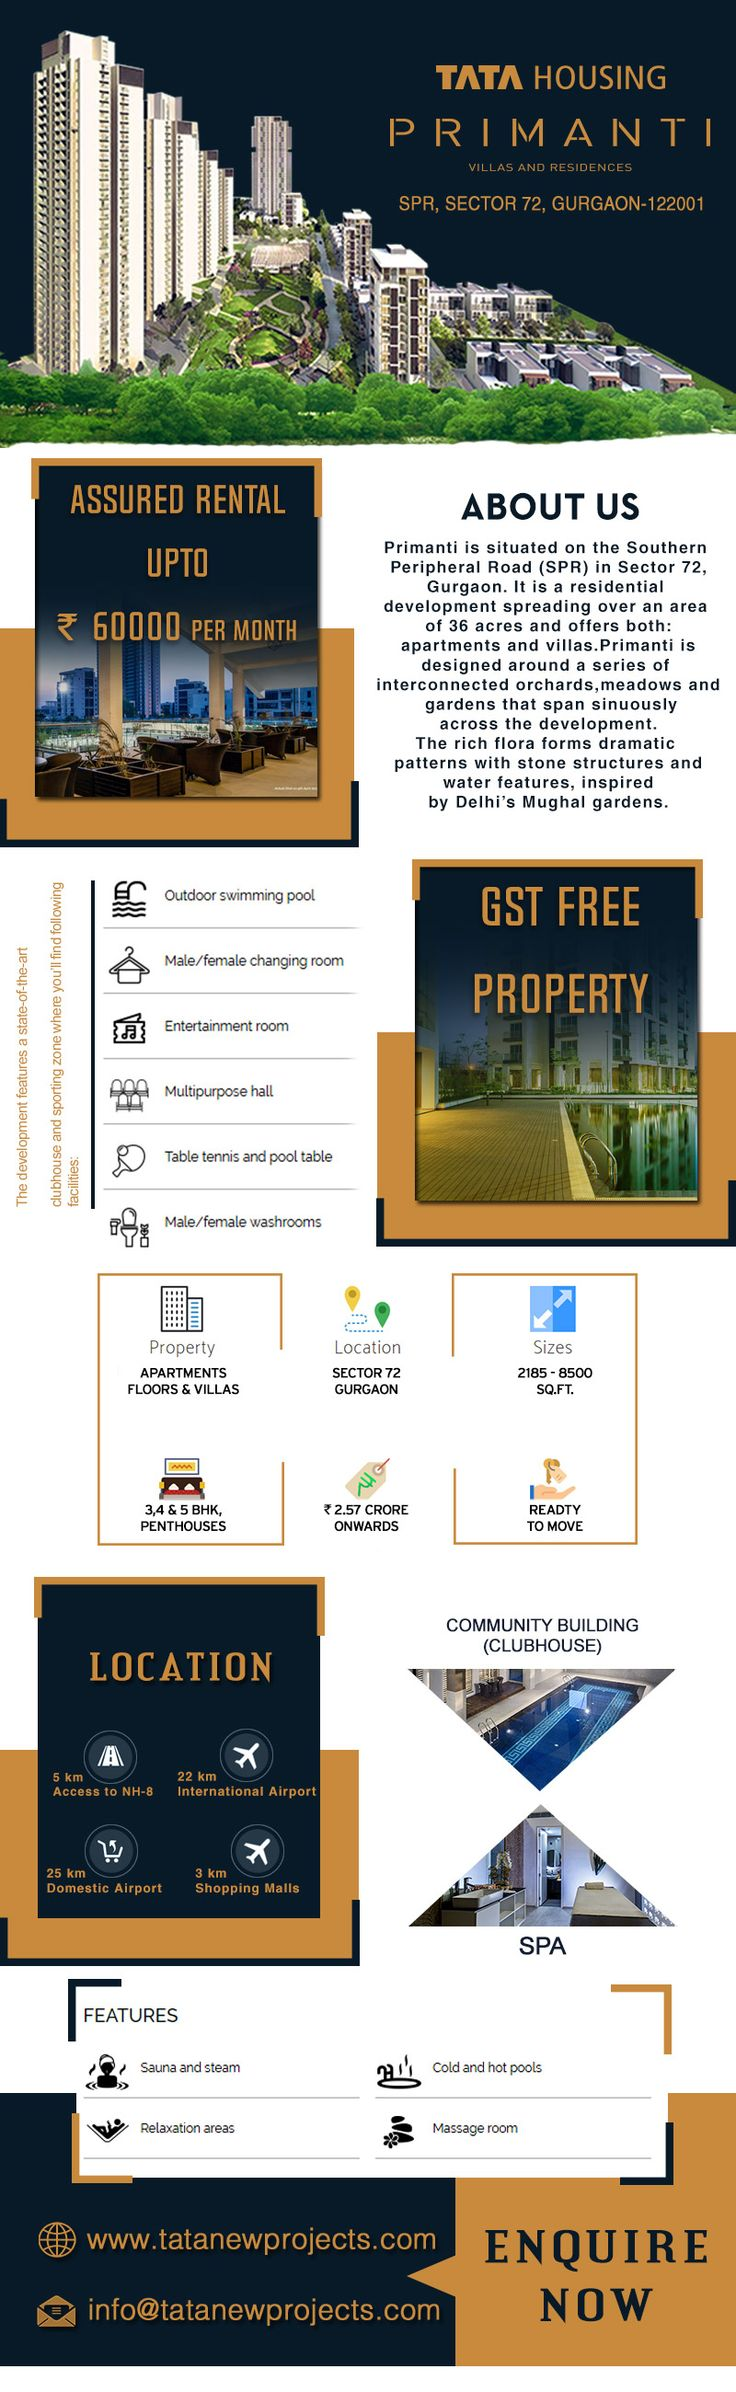 Tata Housing has come up with a prolific housing concept naming it as Tata Primanti. It is located in Sector 72 Gurgaon where 3/4BHK Apartments, Floors, Villas and Penthouse.